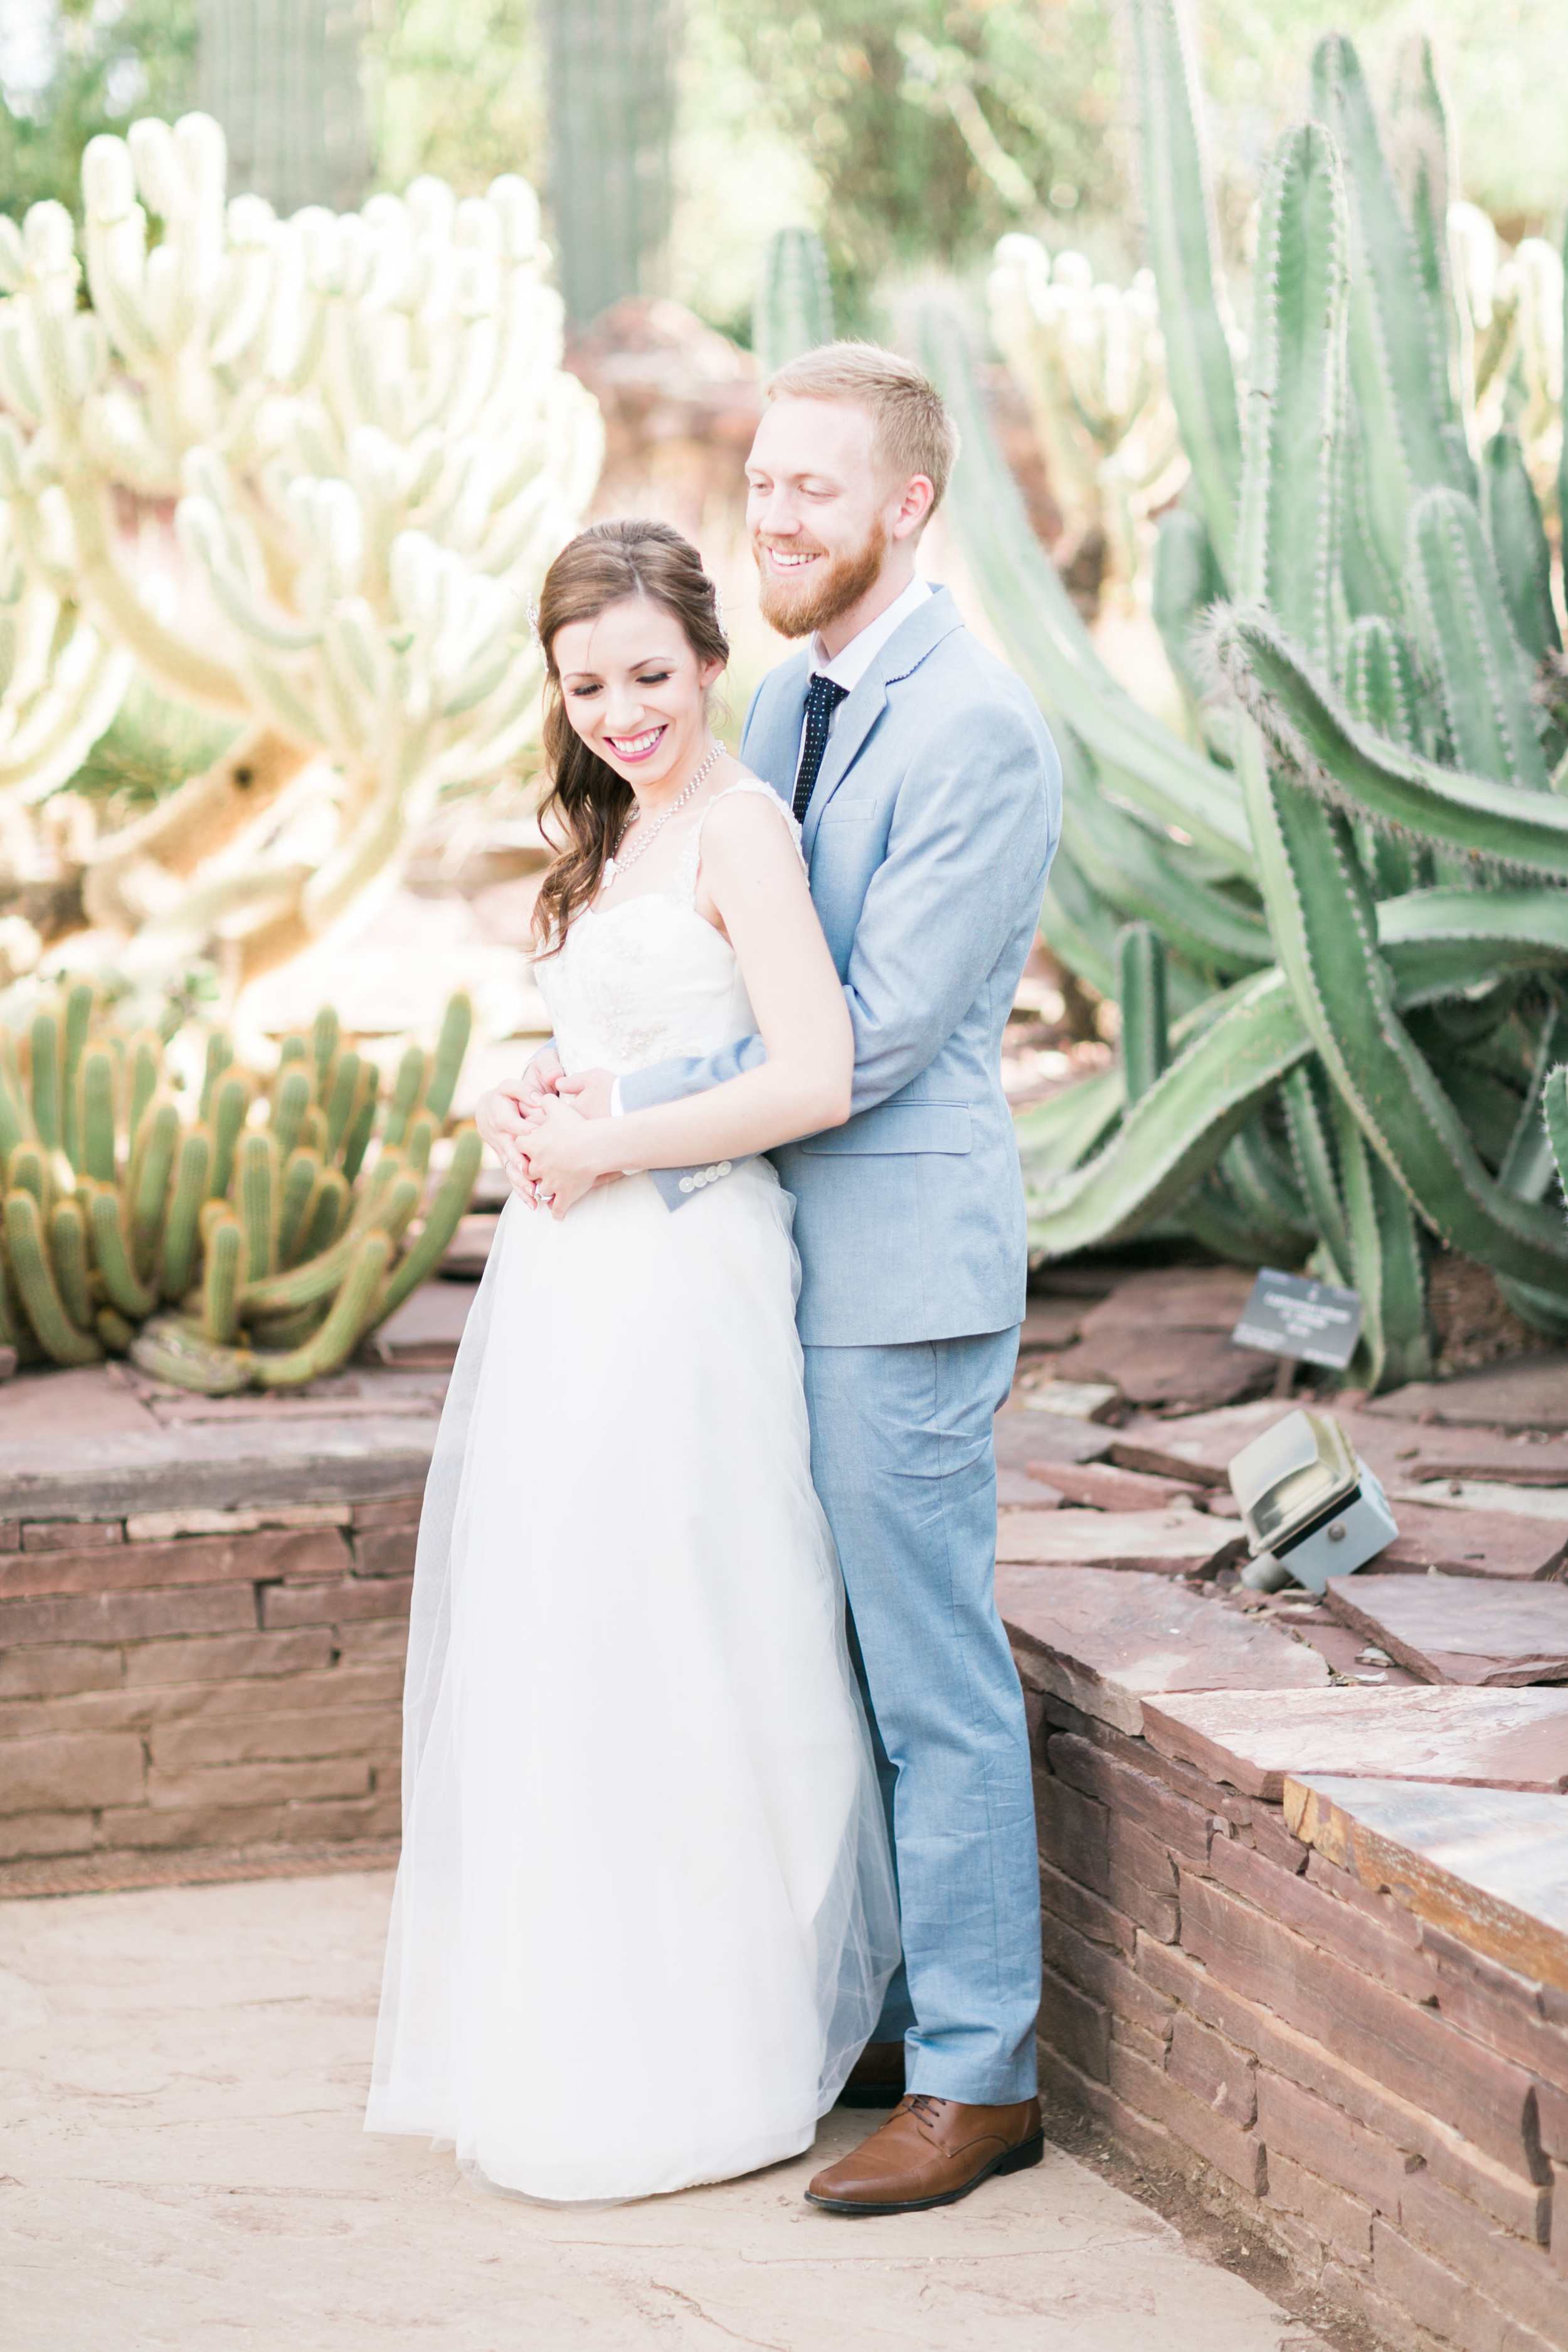 Embracing in the cactus garden